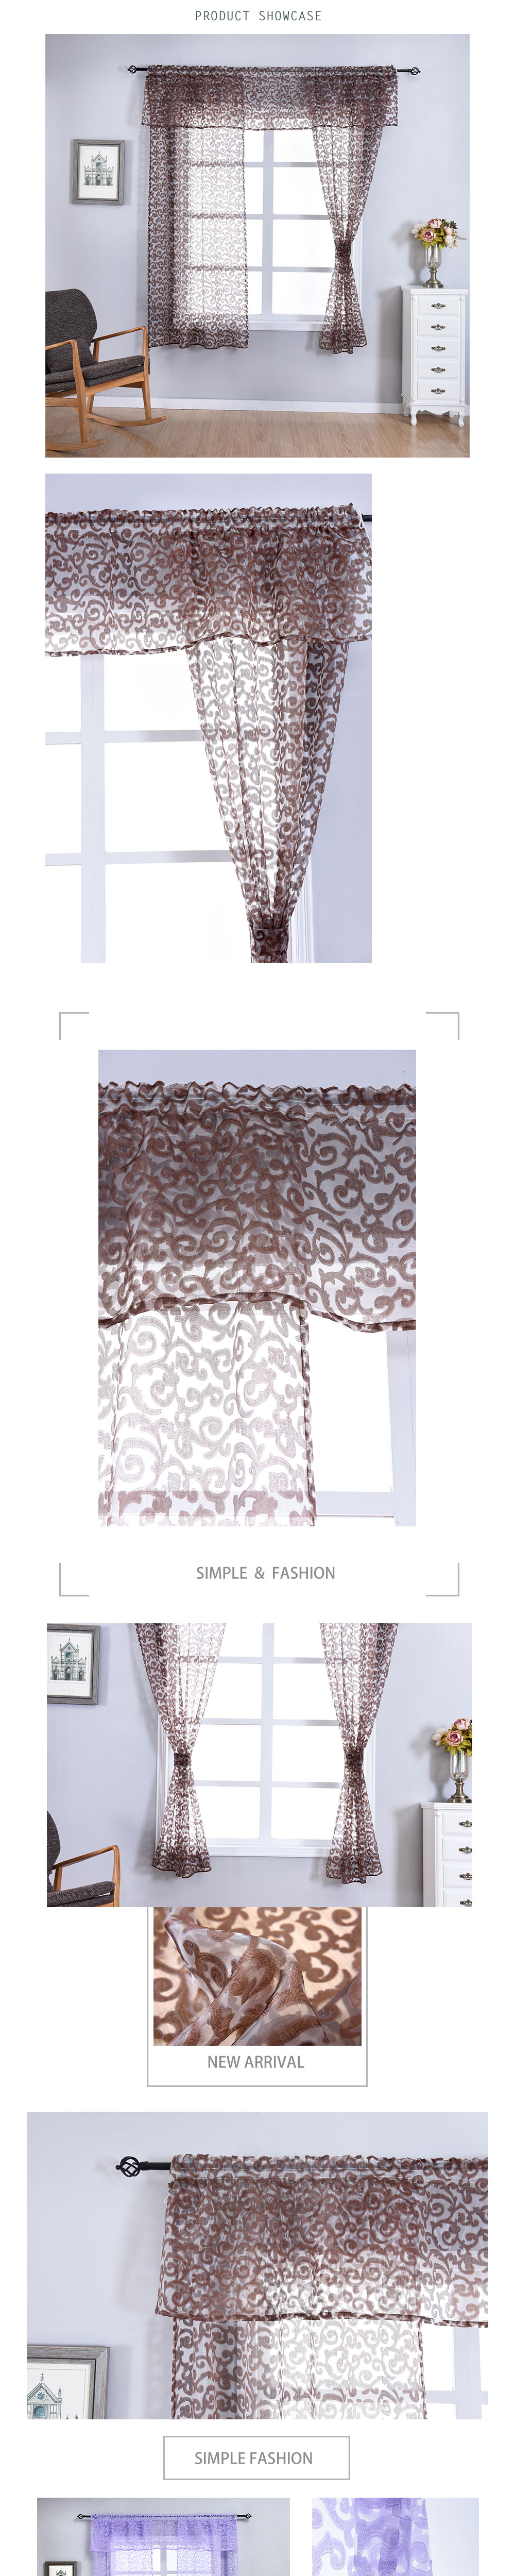 AOL-Smt293 NAPEARL Classic Floral Kitchen Rod Pocket Curtains Window Valance and Tiers Sheer Short Drapes Jacquard Tulle Bay Window Voile (1)